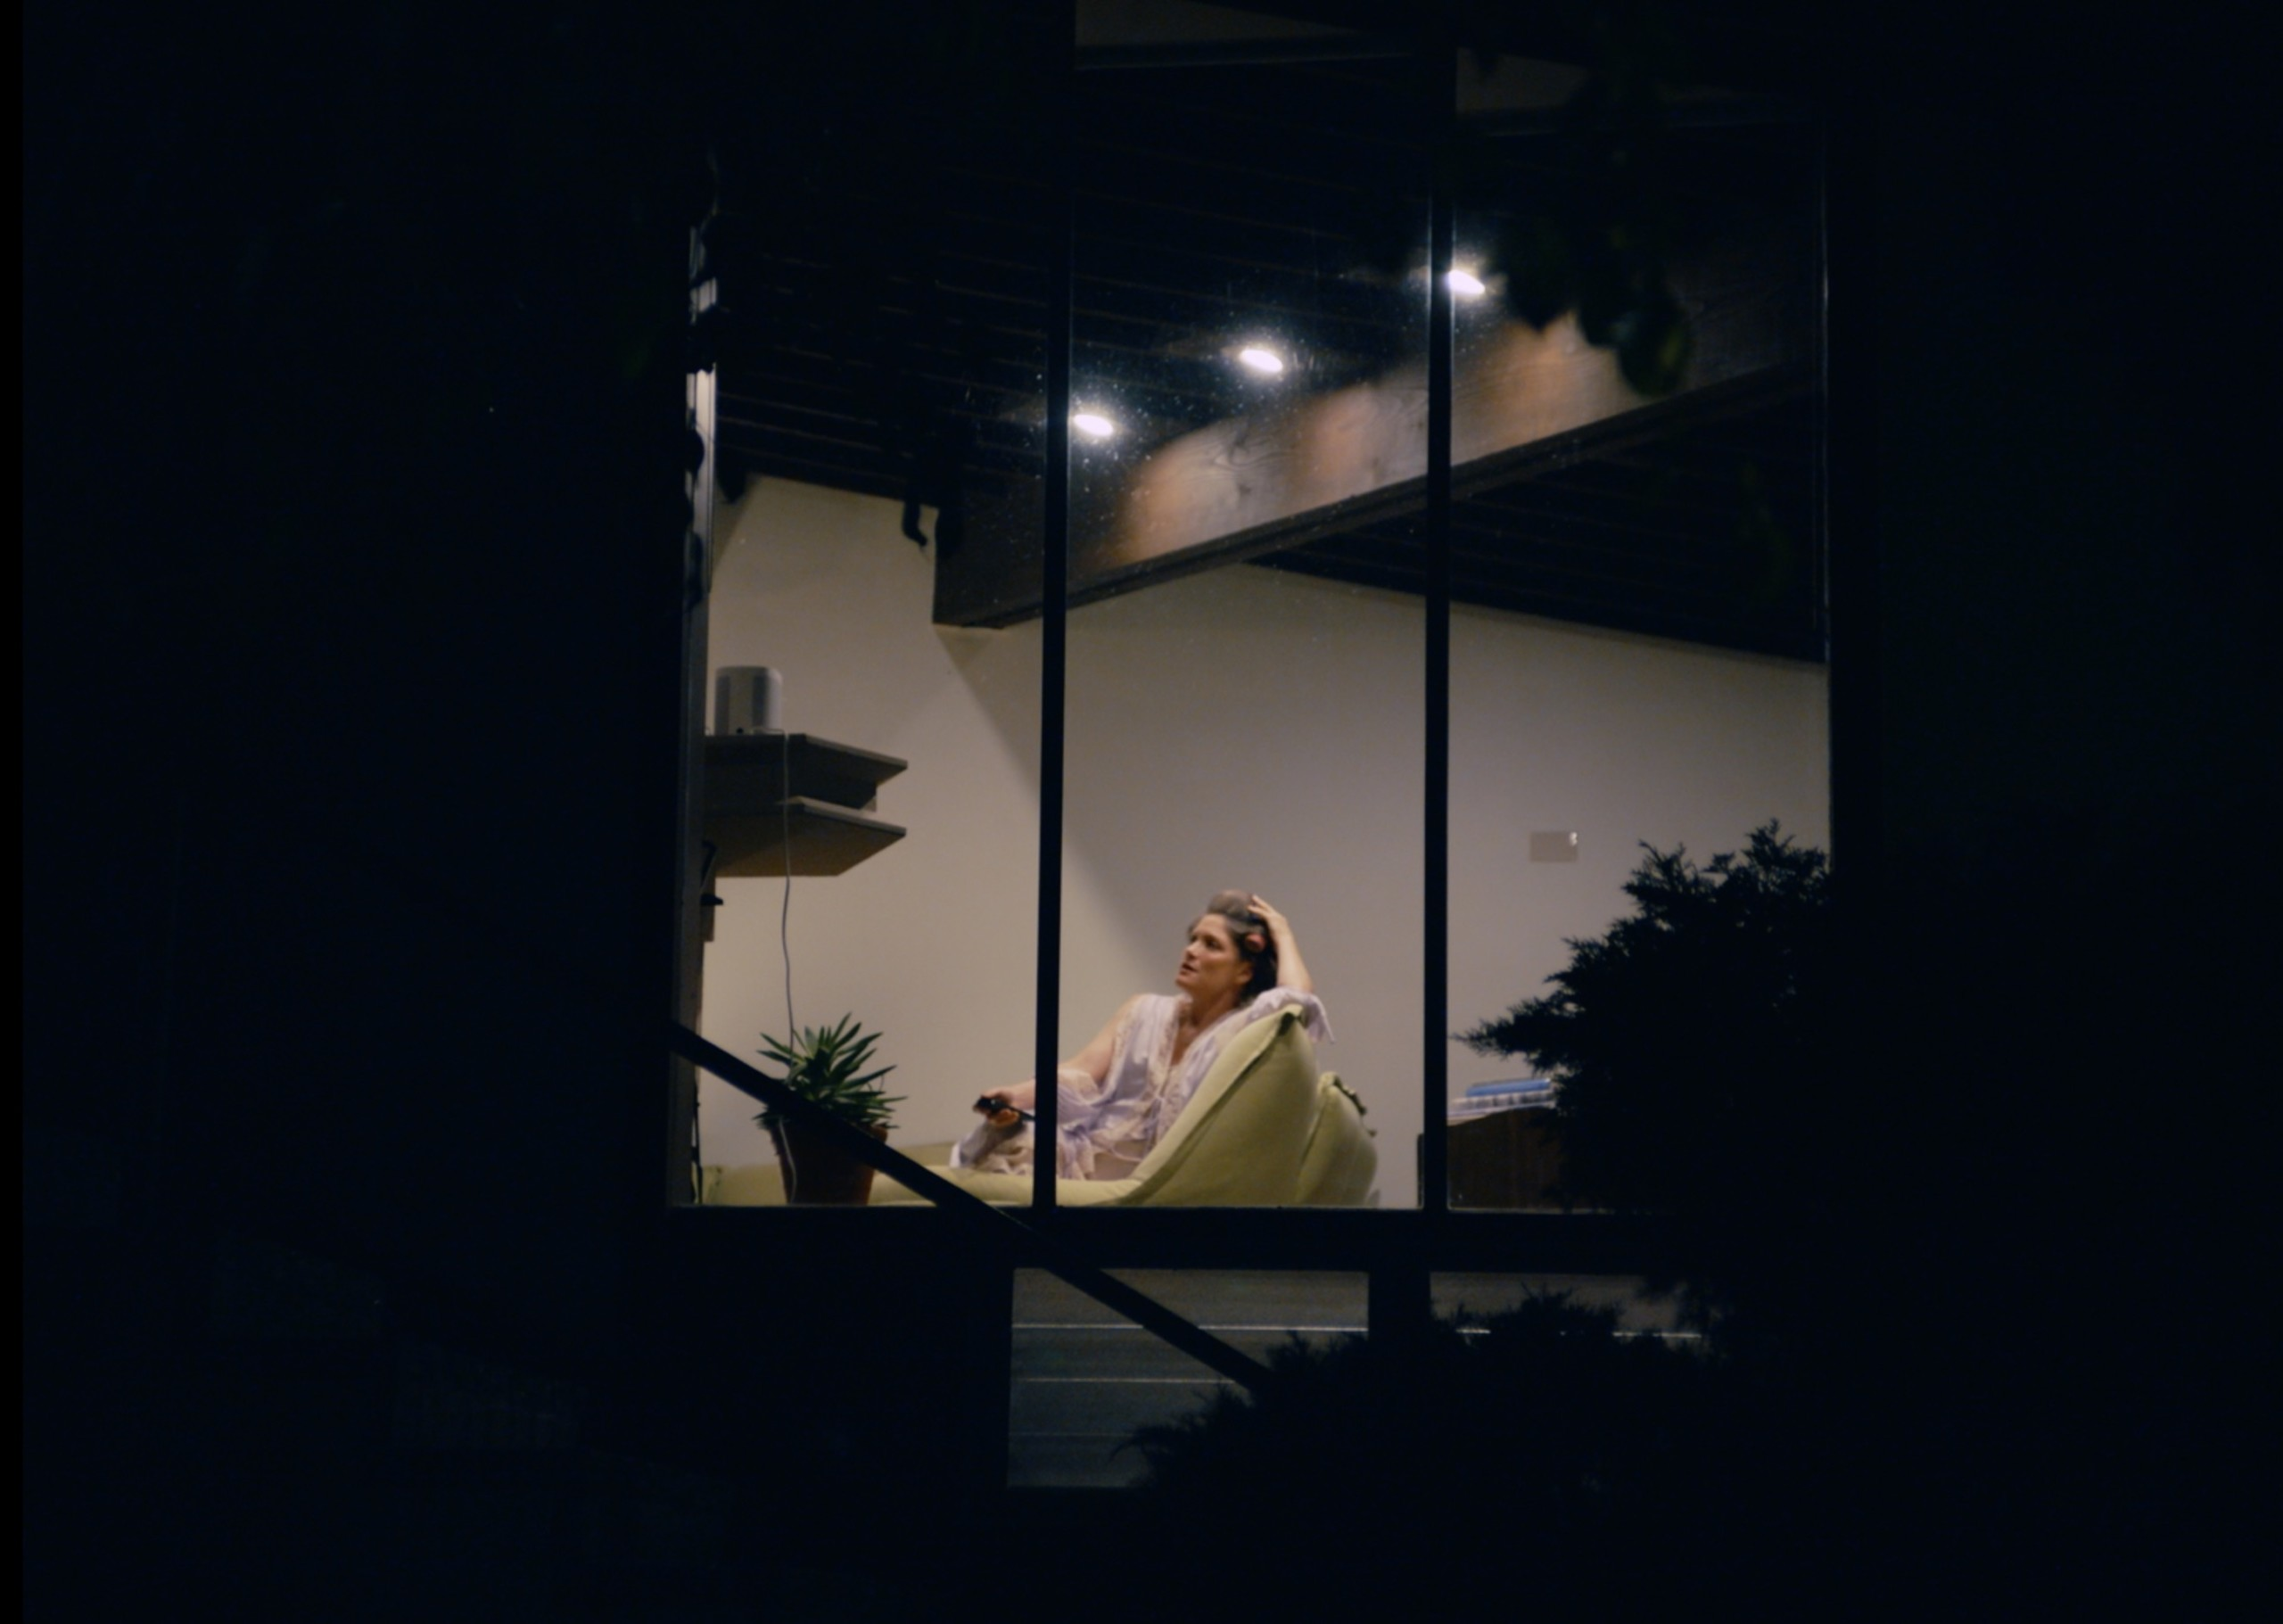 shot of woman from outside her home sitting on a chair with a drink at night